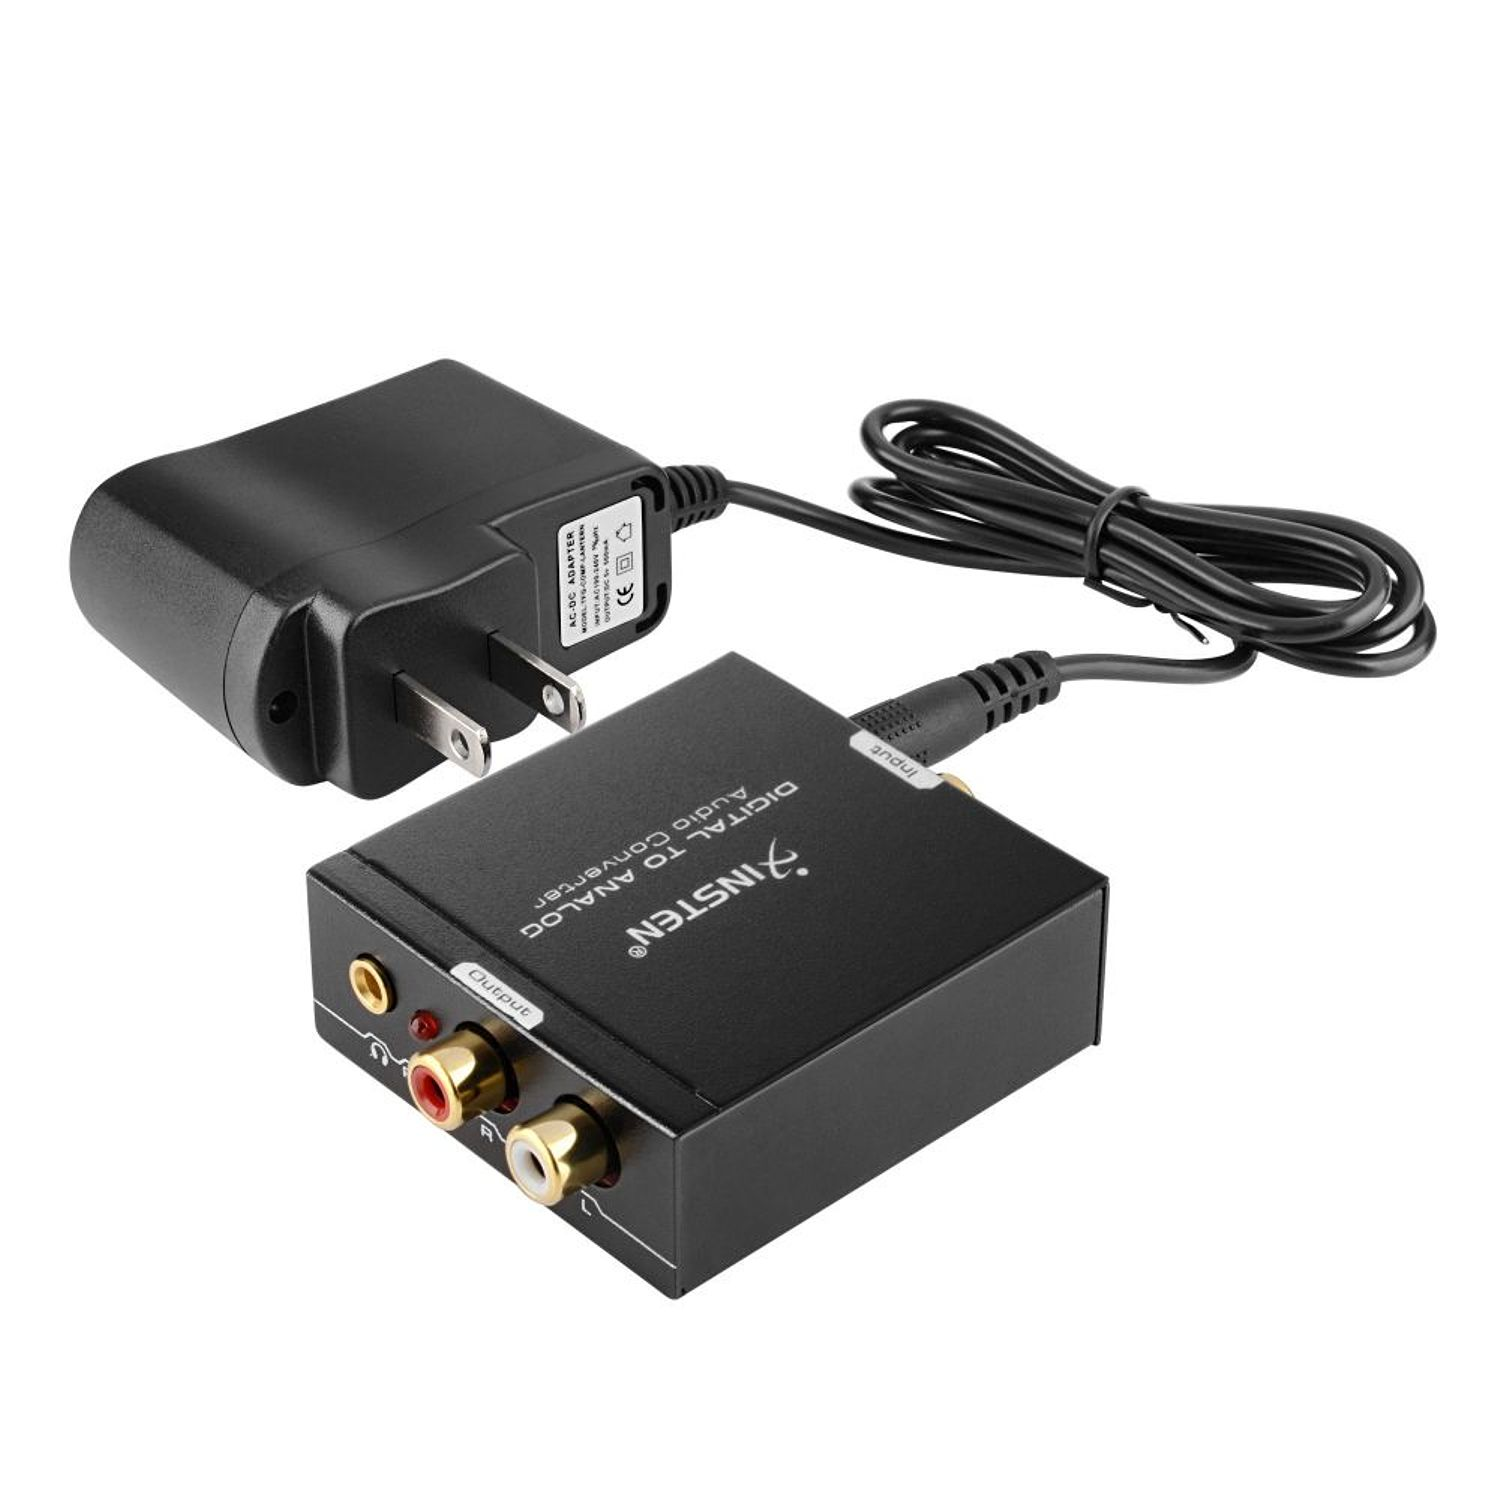 Insten Optical Coax Coaxial Toslink Digital to Analog Audio Converter Adapter RCA L/R 3.5mm